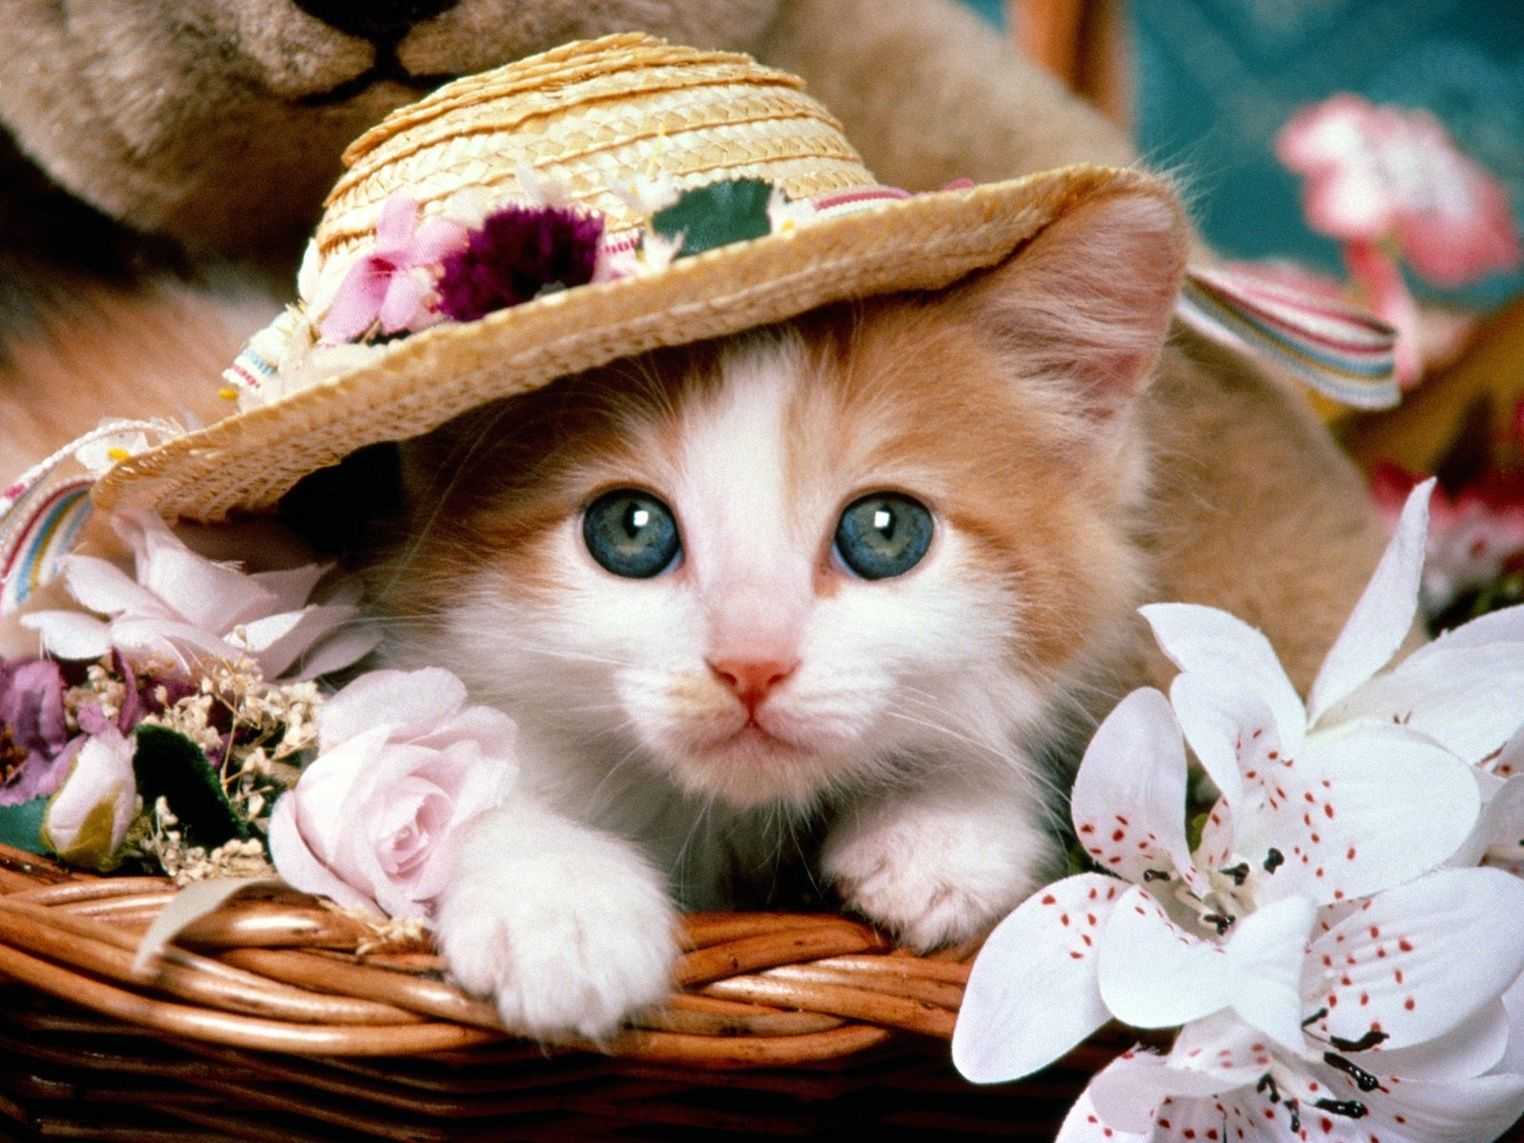 Nothing found for Download Cute cat wallpaper, Cute